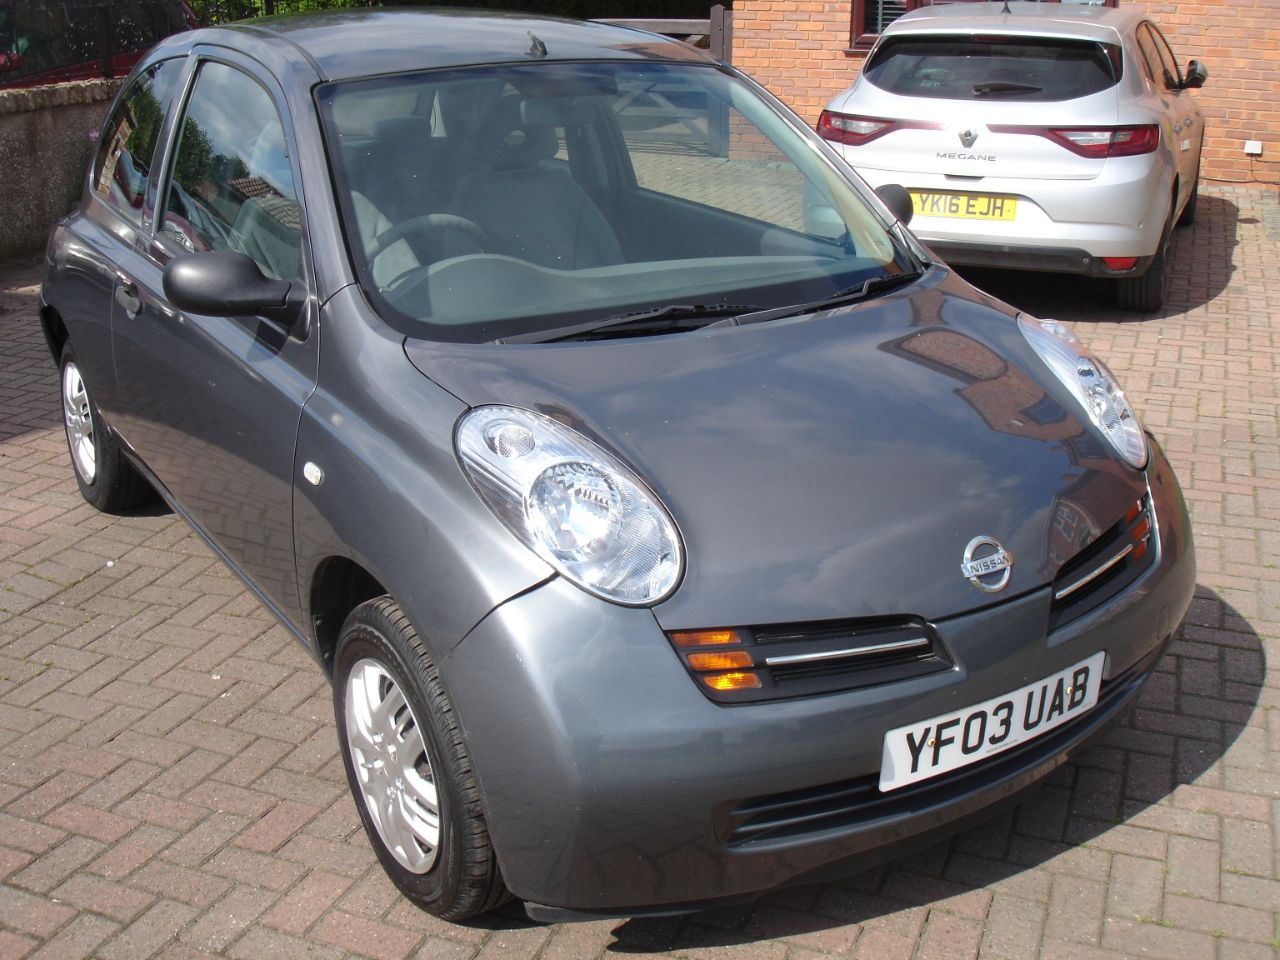 Nissan Micra 1.2 S 16v 3dr Hatchback Petrol Metallic Grey at Level Pitch Selby